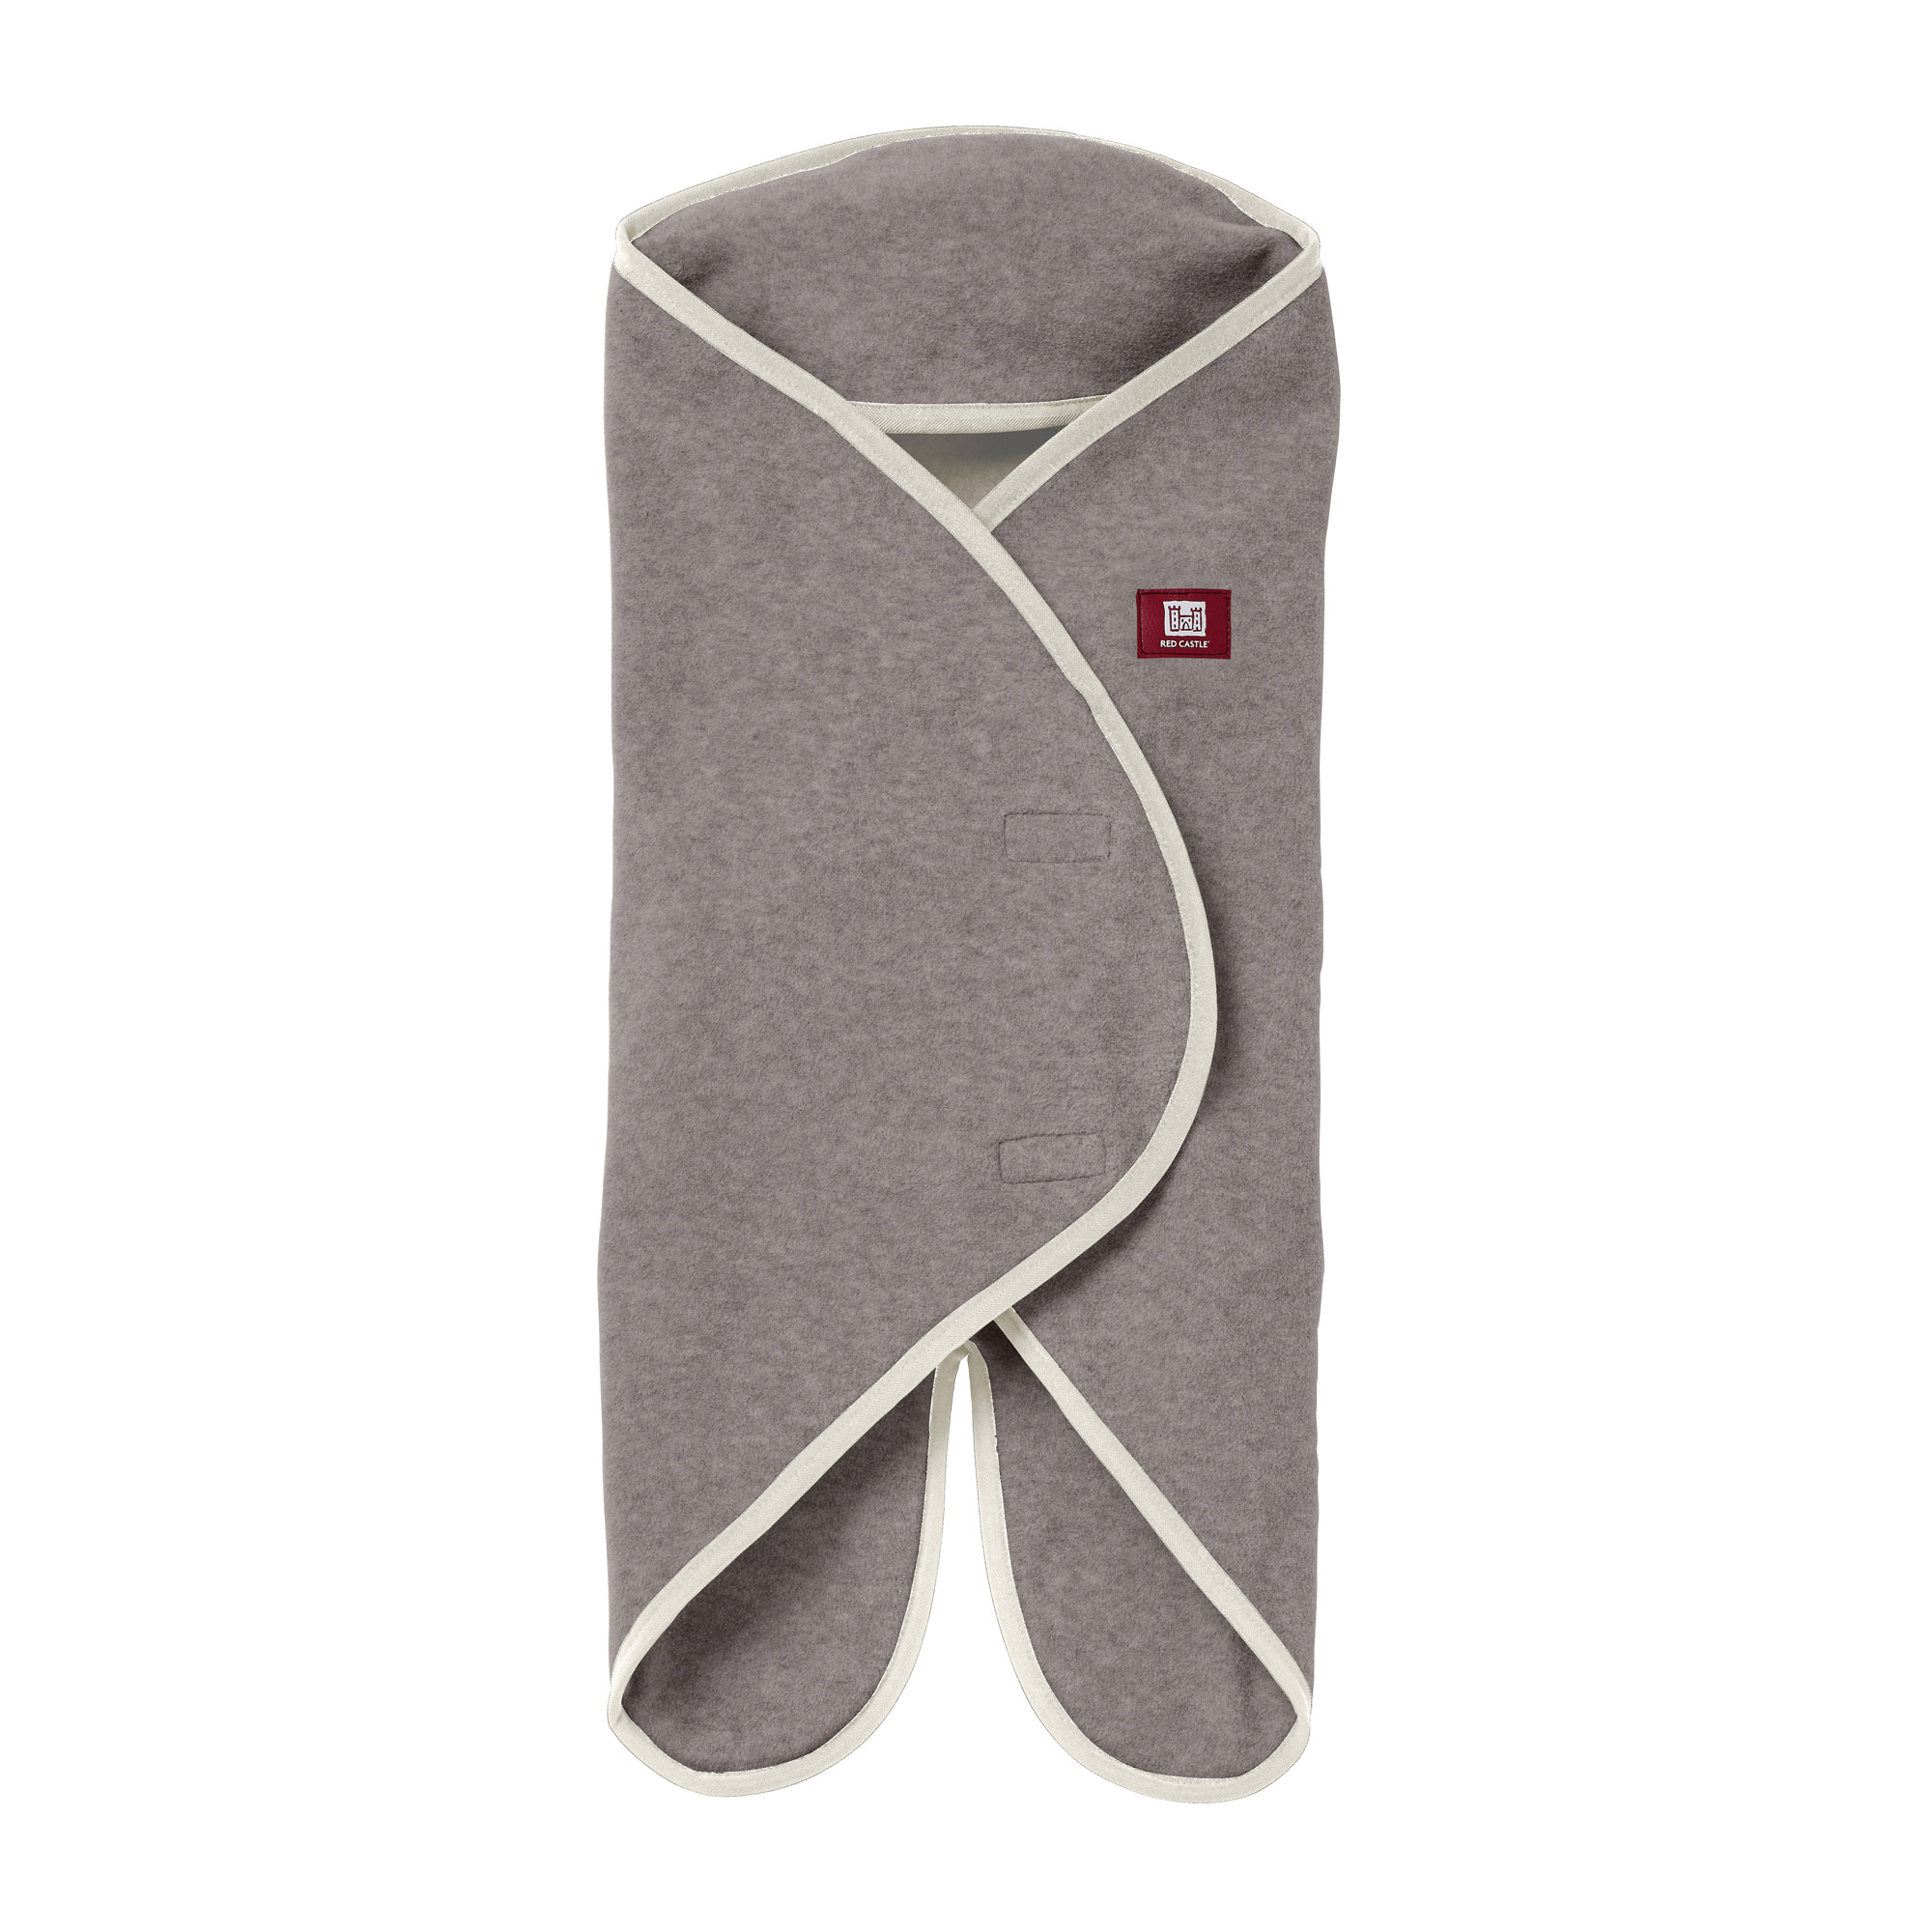 Couverture Babynomade® double polaire Beige T1 de Red Castle